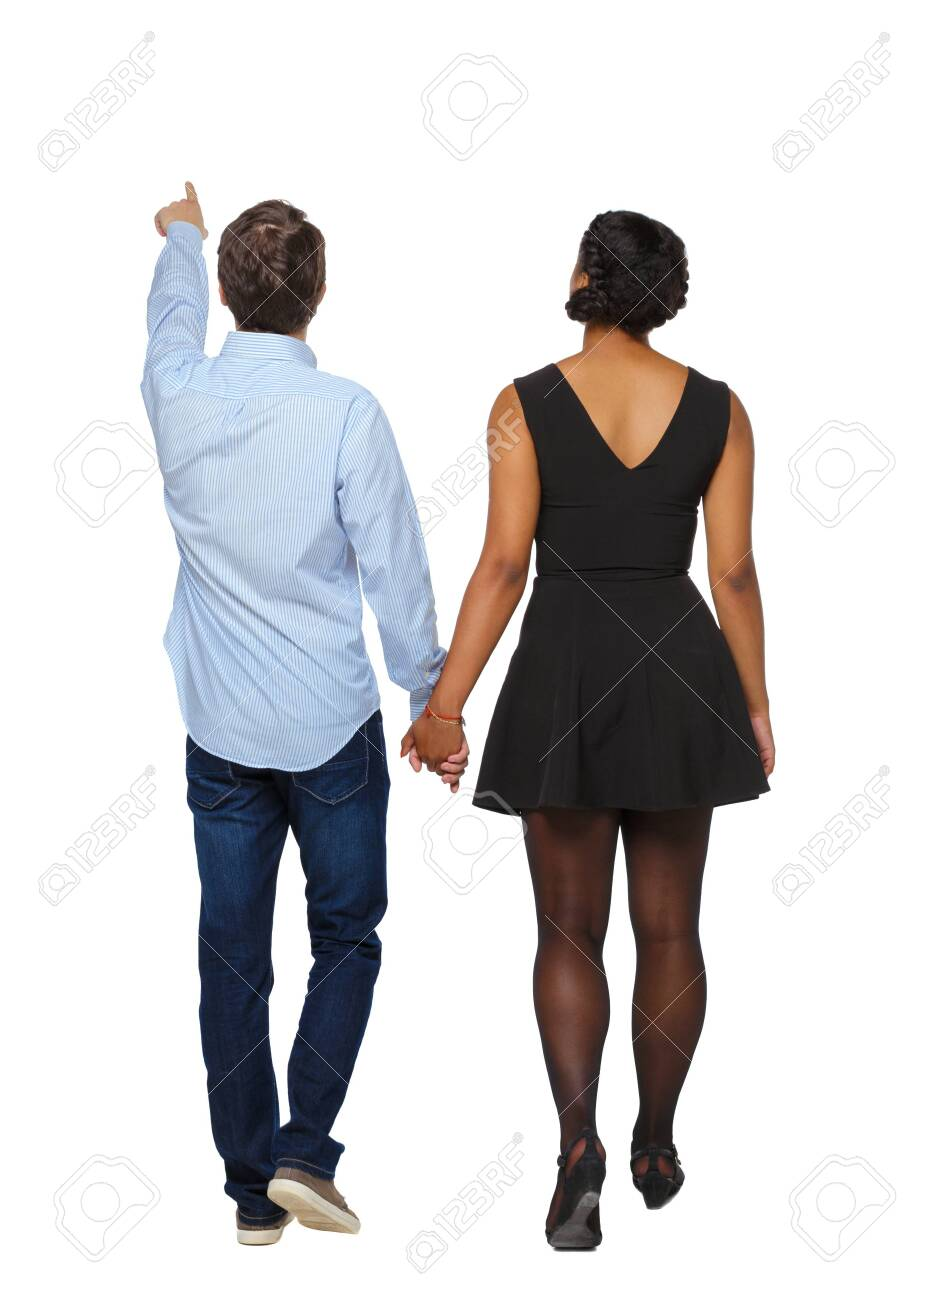 Back view of interracial going couple who points somewhere. walking friendly girl and guy holding hands. Rear view people collection. backside view of person. Isolated over white background. The guy leads the black girl by the hand. - 123233039